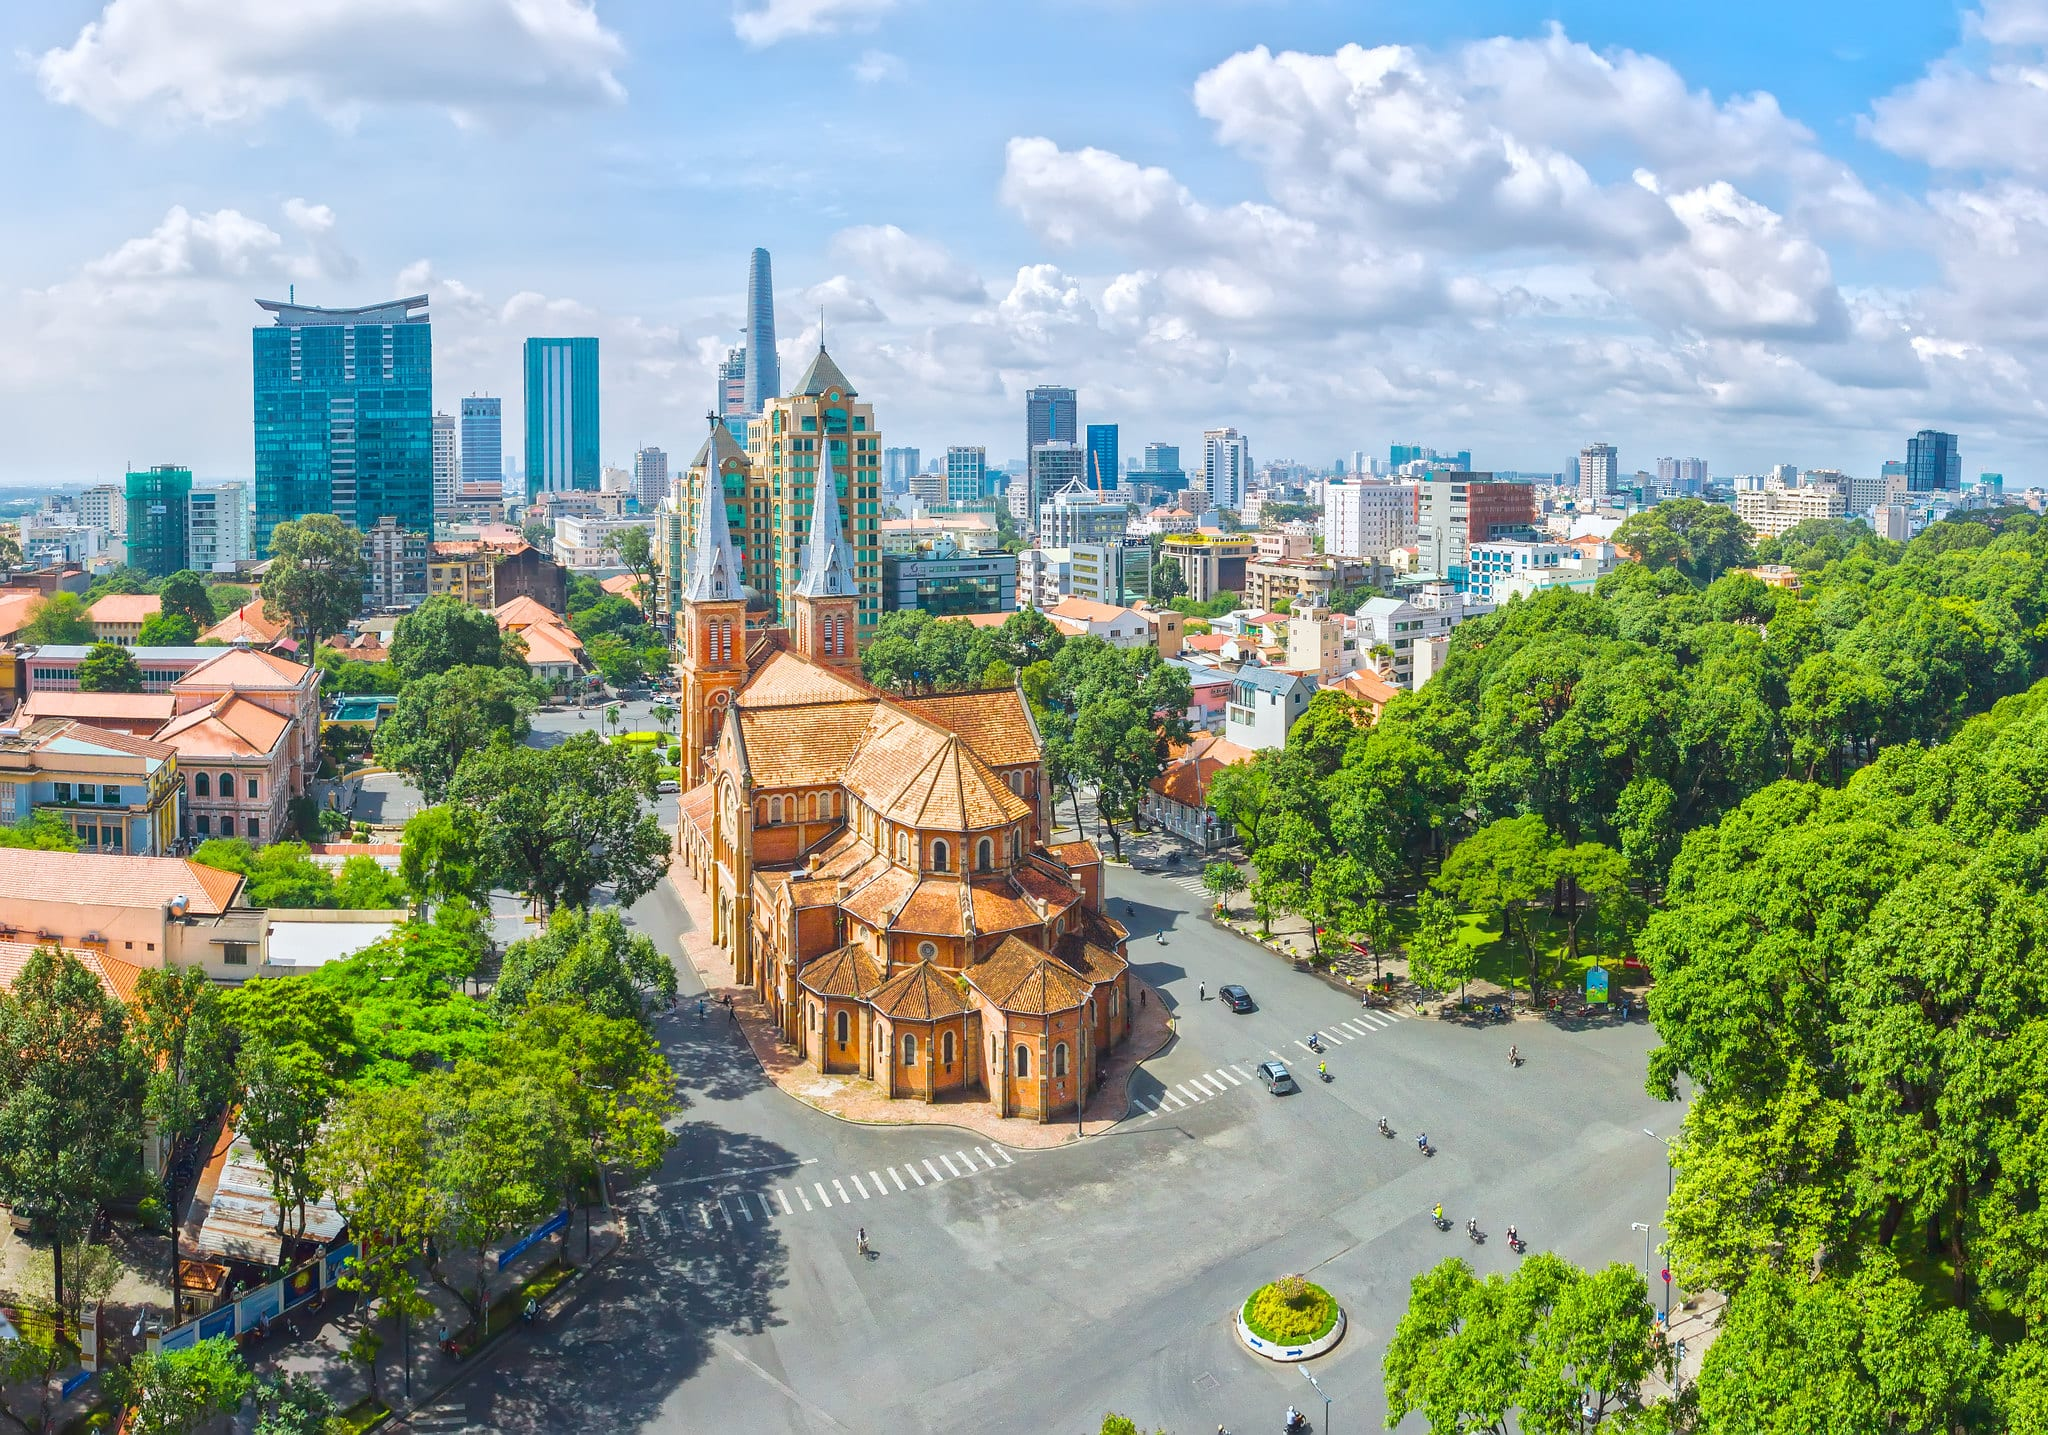 Image of the Notre-Dame Cathedral Basilica of Saigon in Ho Chi Minh City aerial view